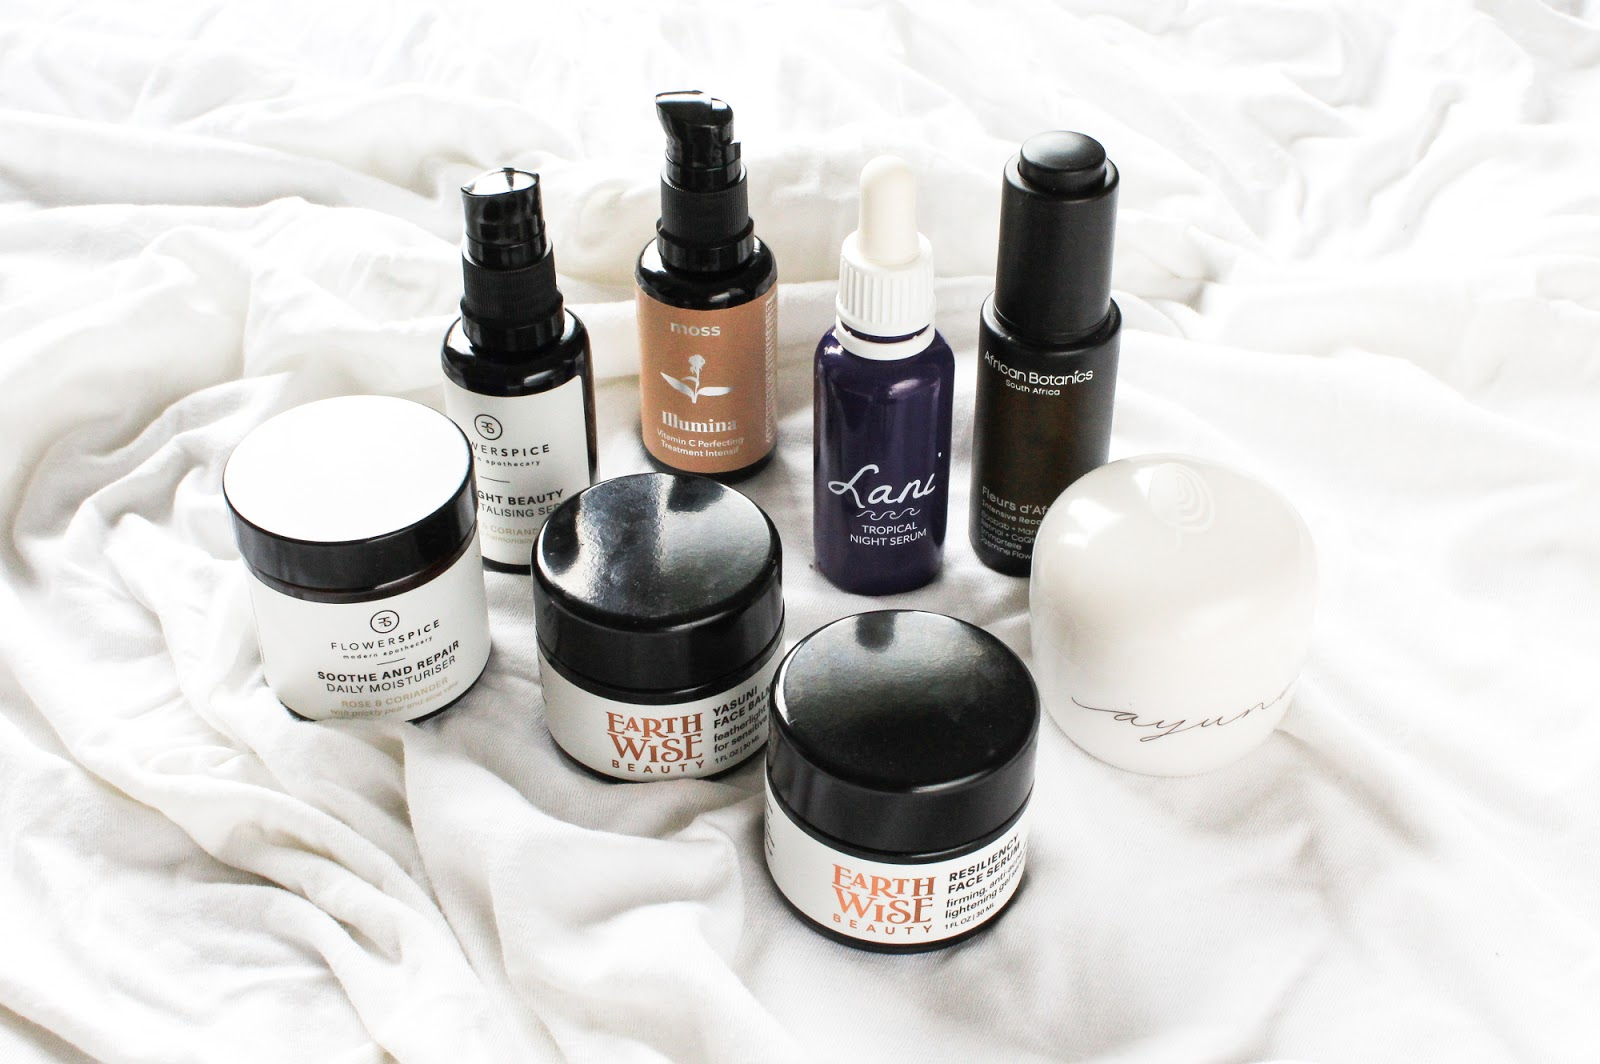 Evening Skincare Routine featuring Ayuna, Moss, Earthwise Beauty, Flower and Spice, African Botanics, Lani